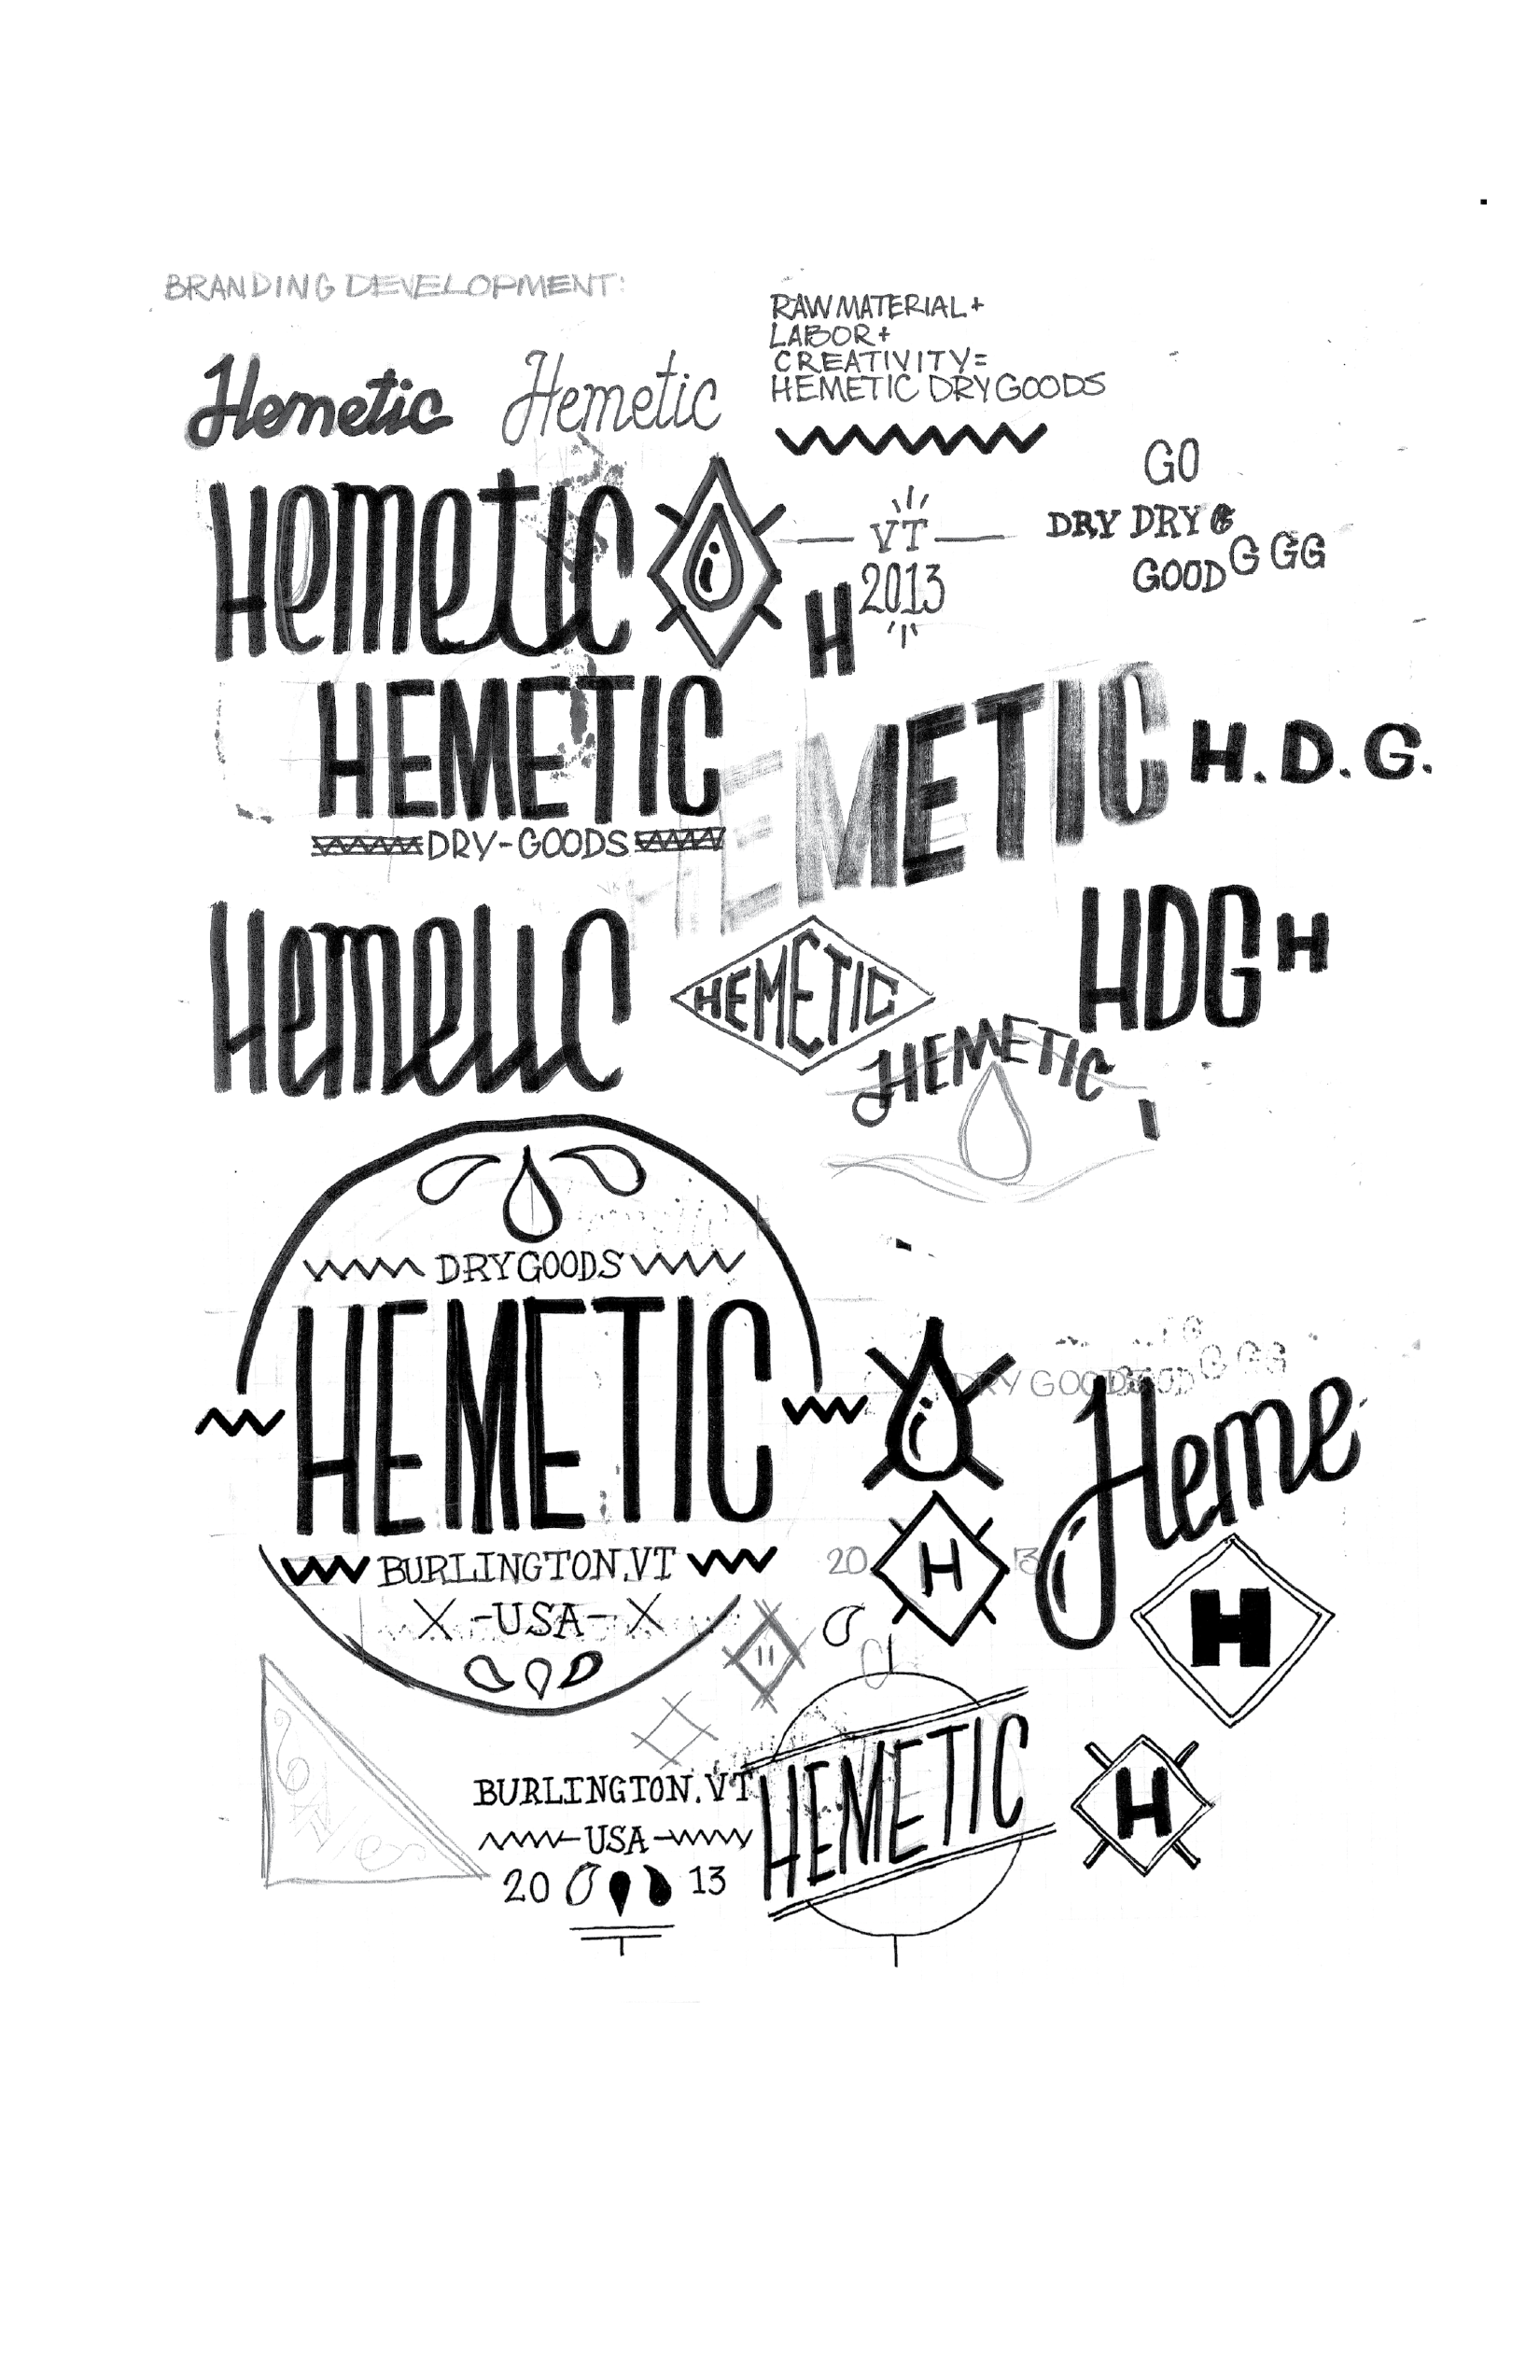 Hemetic Trading Co. - image 11 - student project